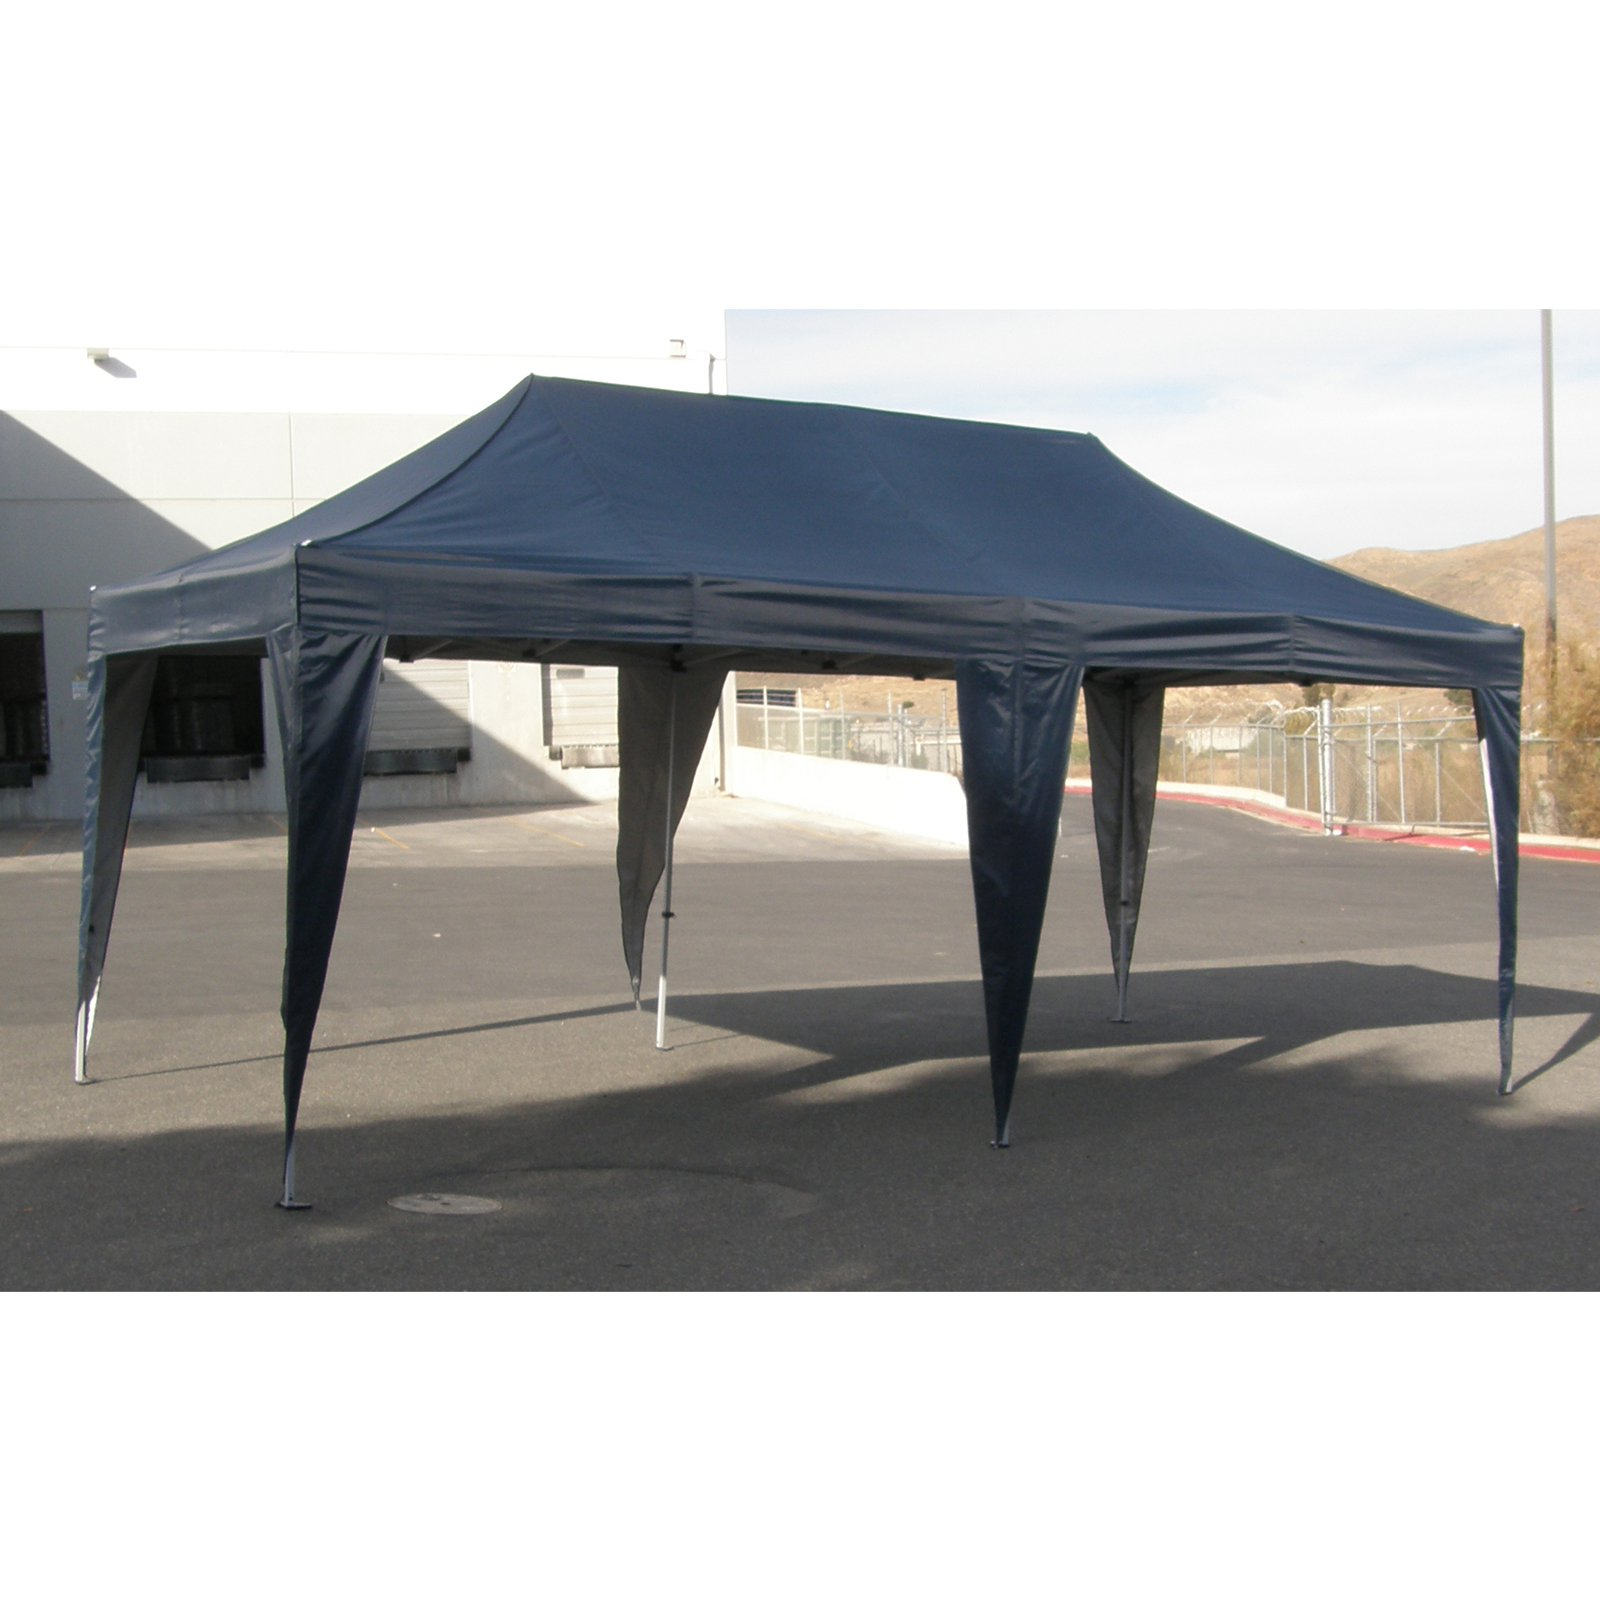 Impact Canopy ALDS 10x20 ft. Pop Up Canopy Tent Aluminum With Roller Bag  sc 1 st  Walmart.com & Impact Canopy ALDS 10x20 ft. Pop Up Canopy Tent Aluminum With ...